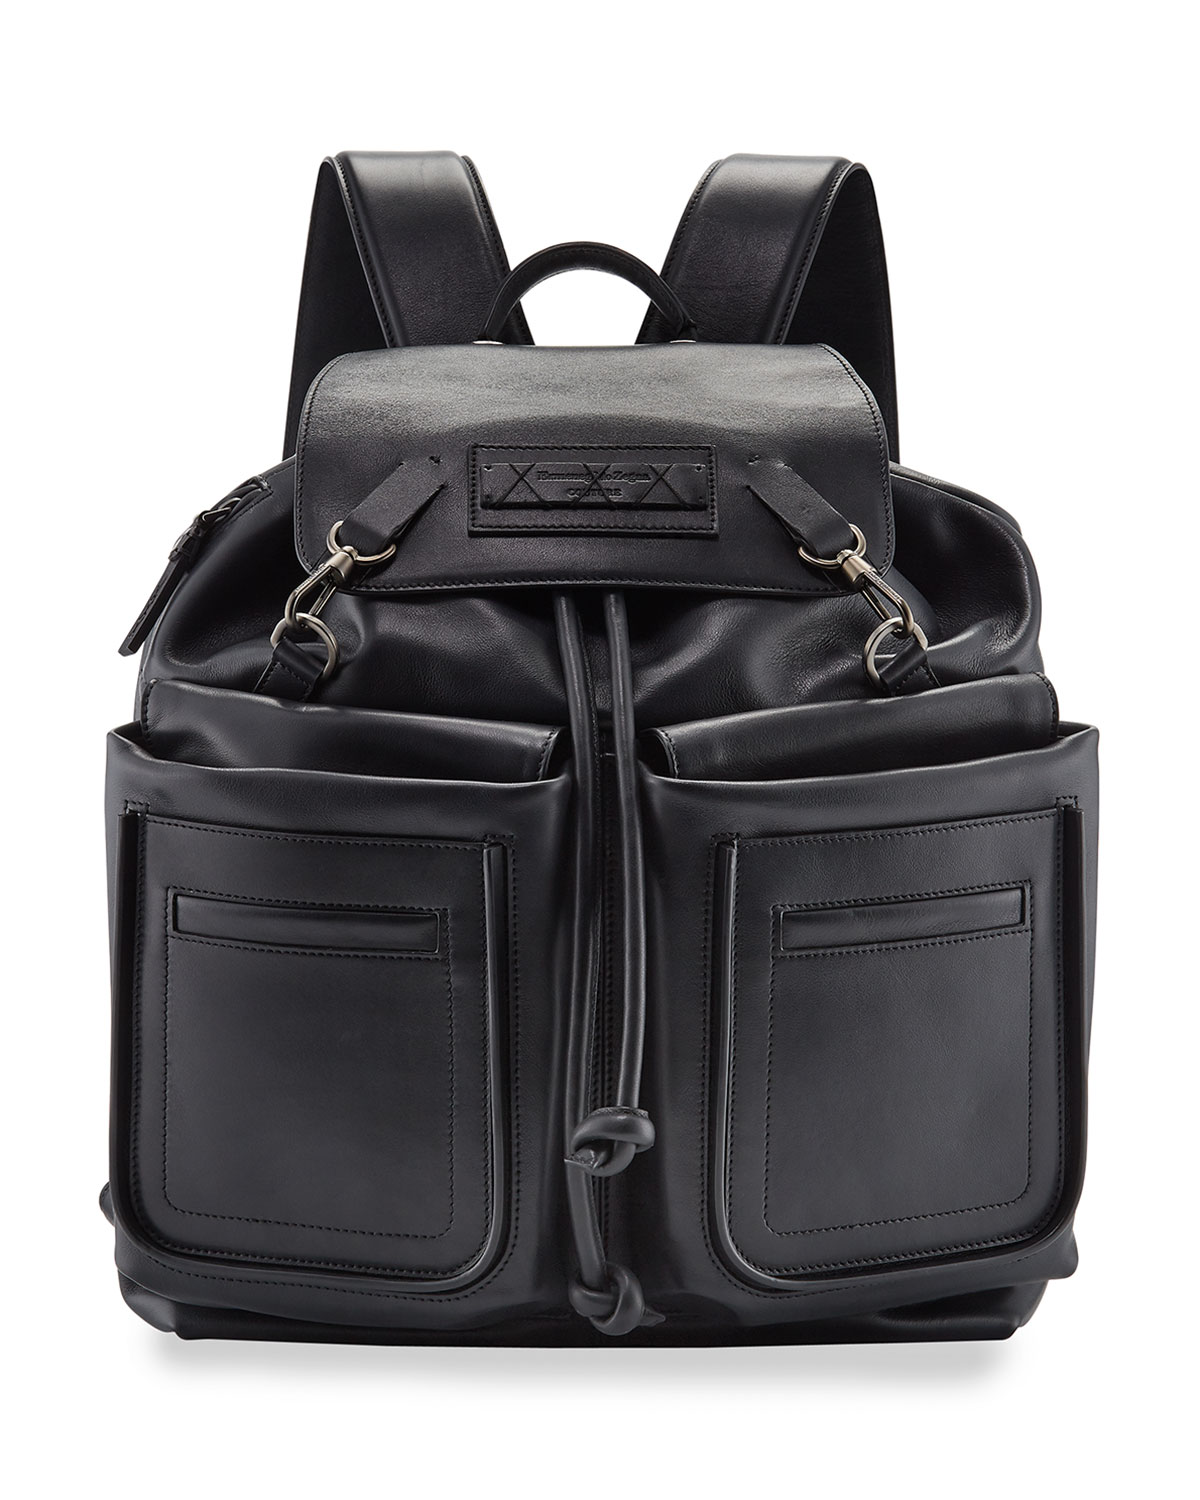 Ermenegildo Zegna Men's Lanificio Leather Backpack